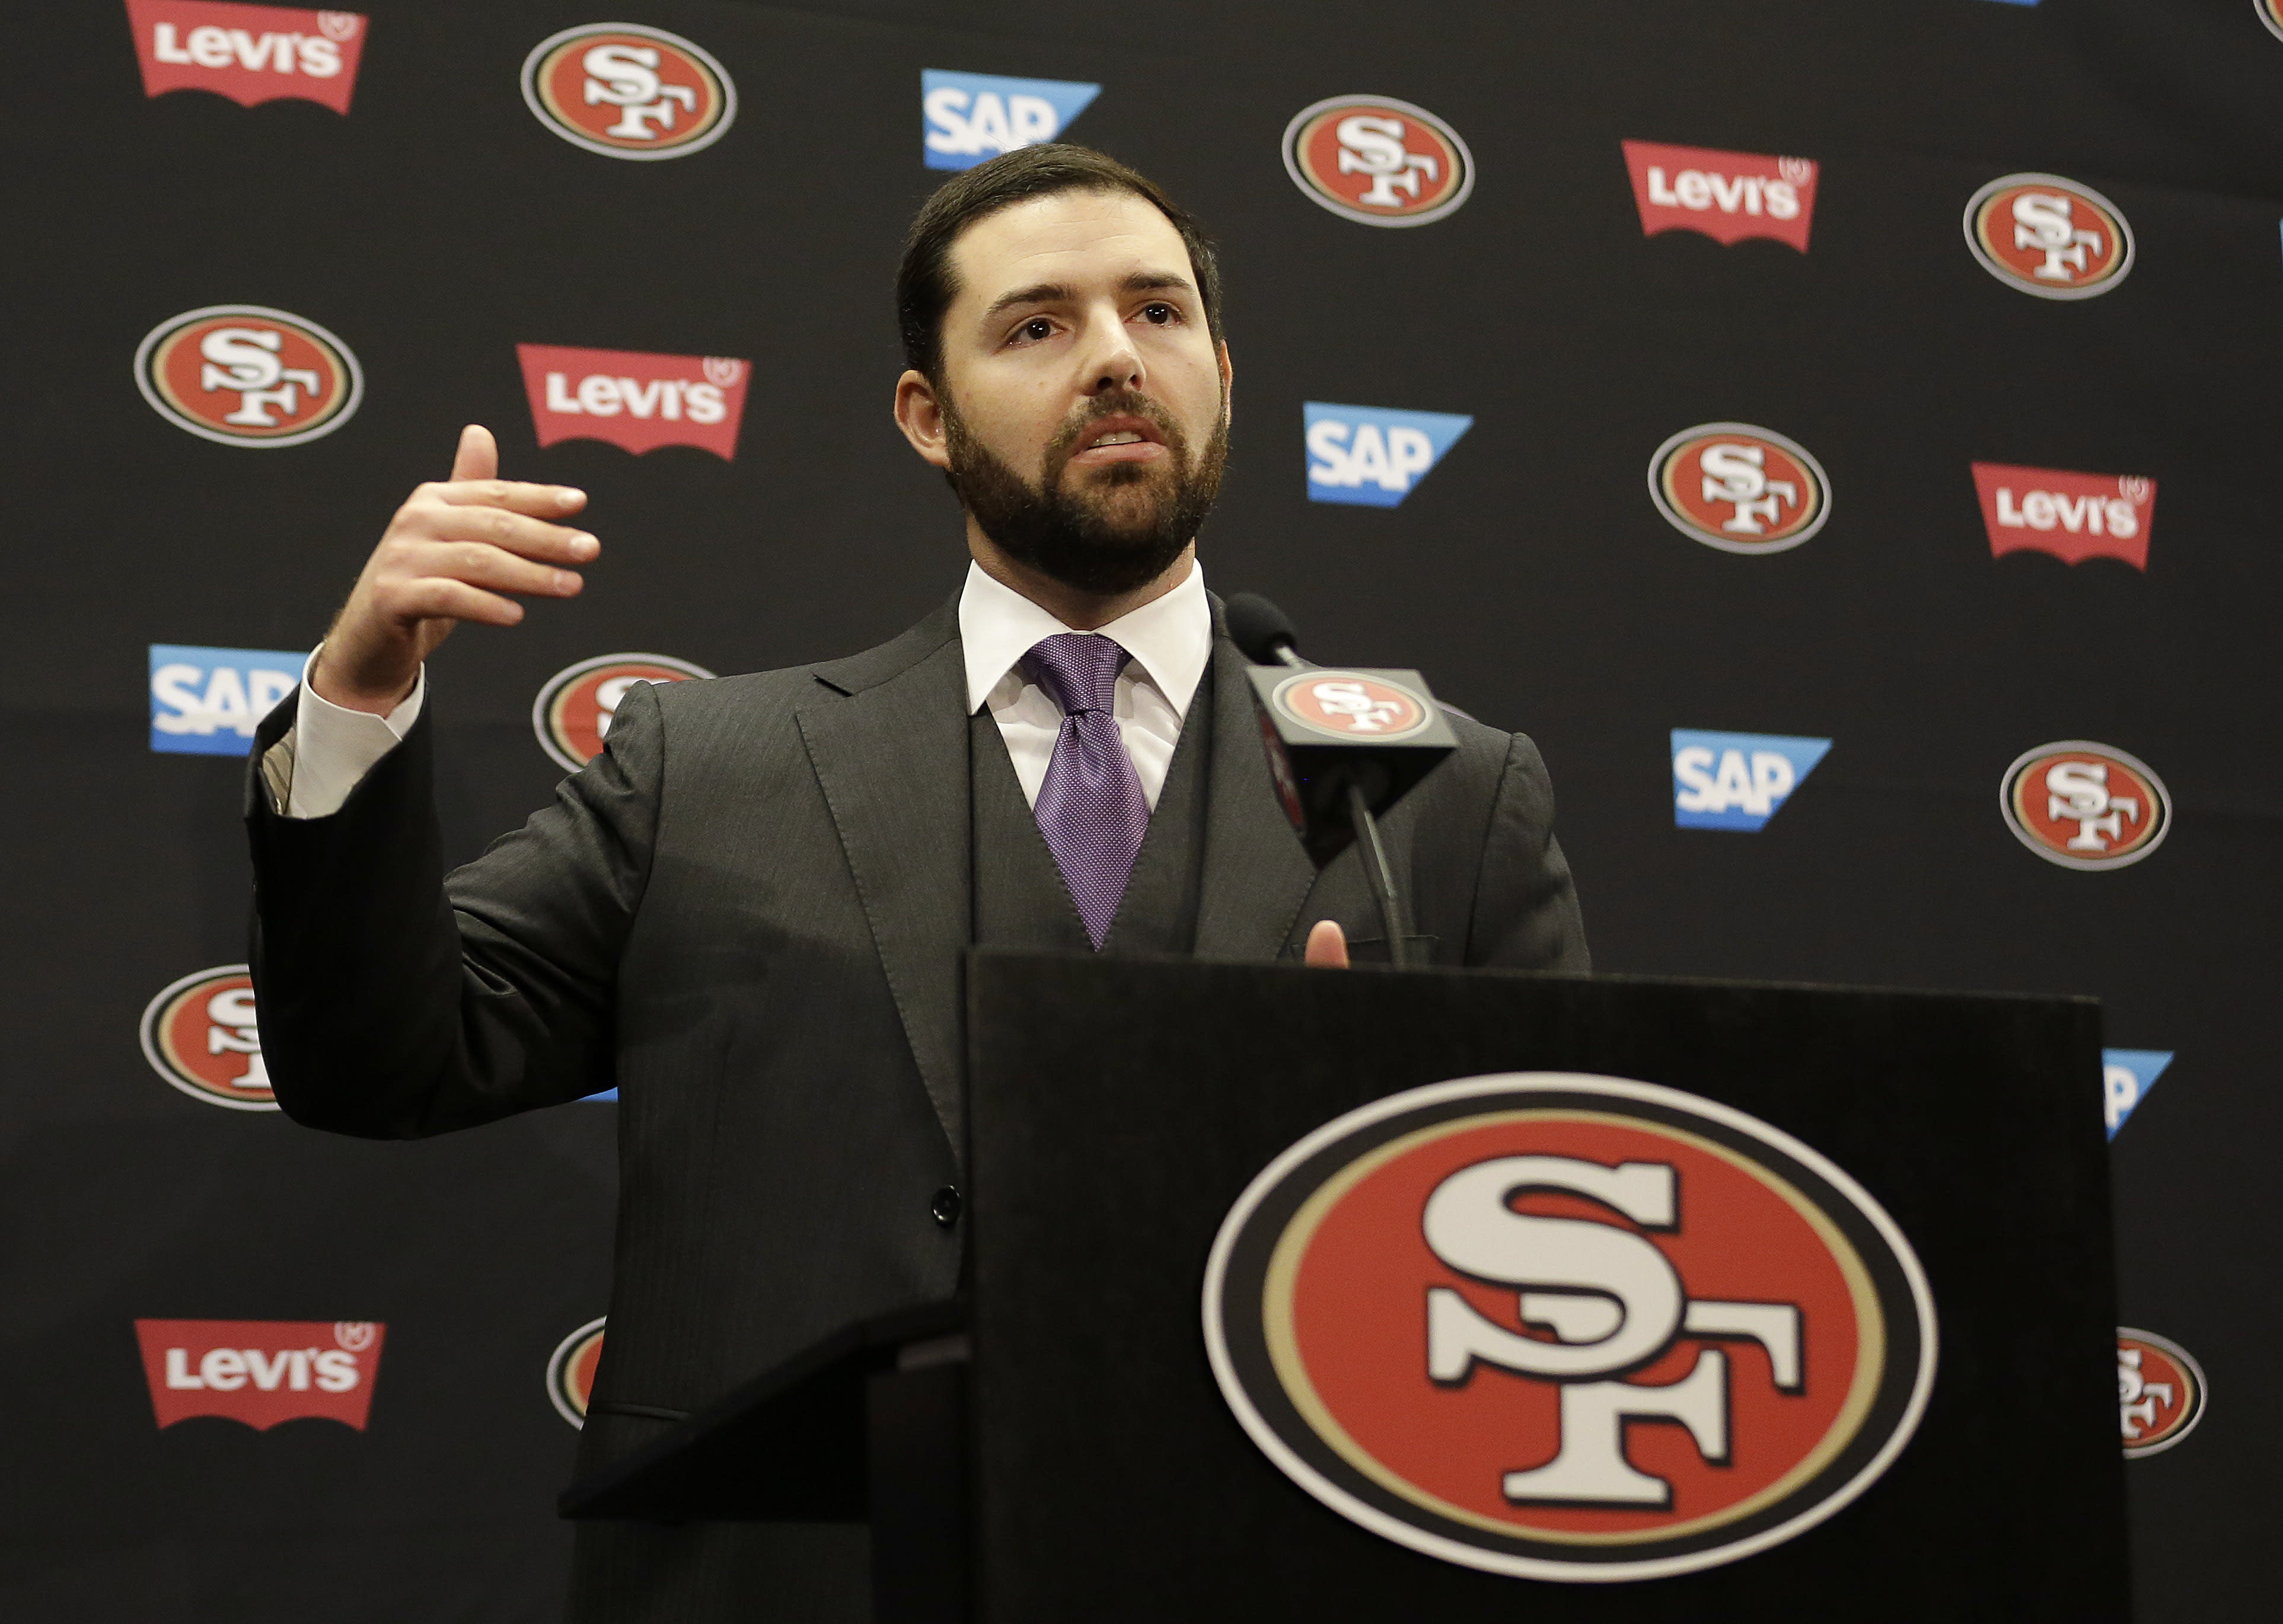 Mad Dash: 49ers fans rip owner trying to give tickets away